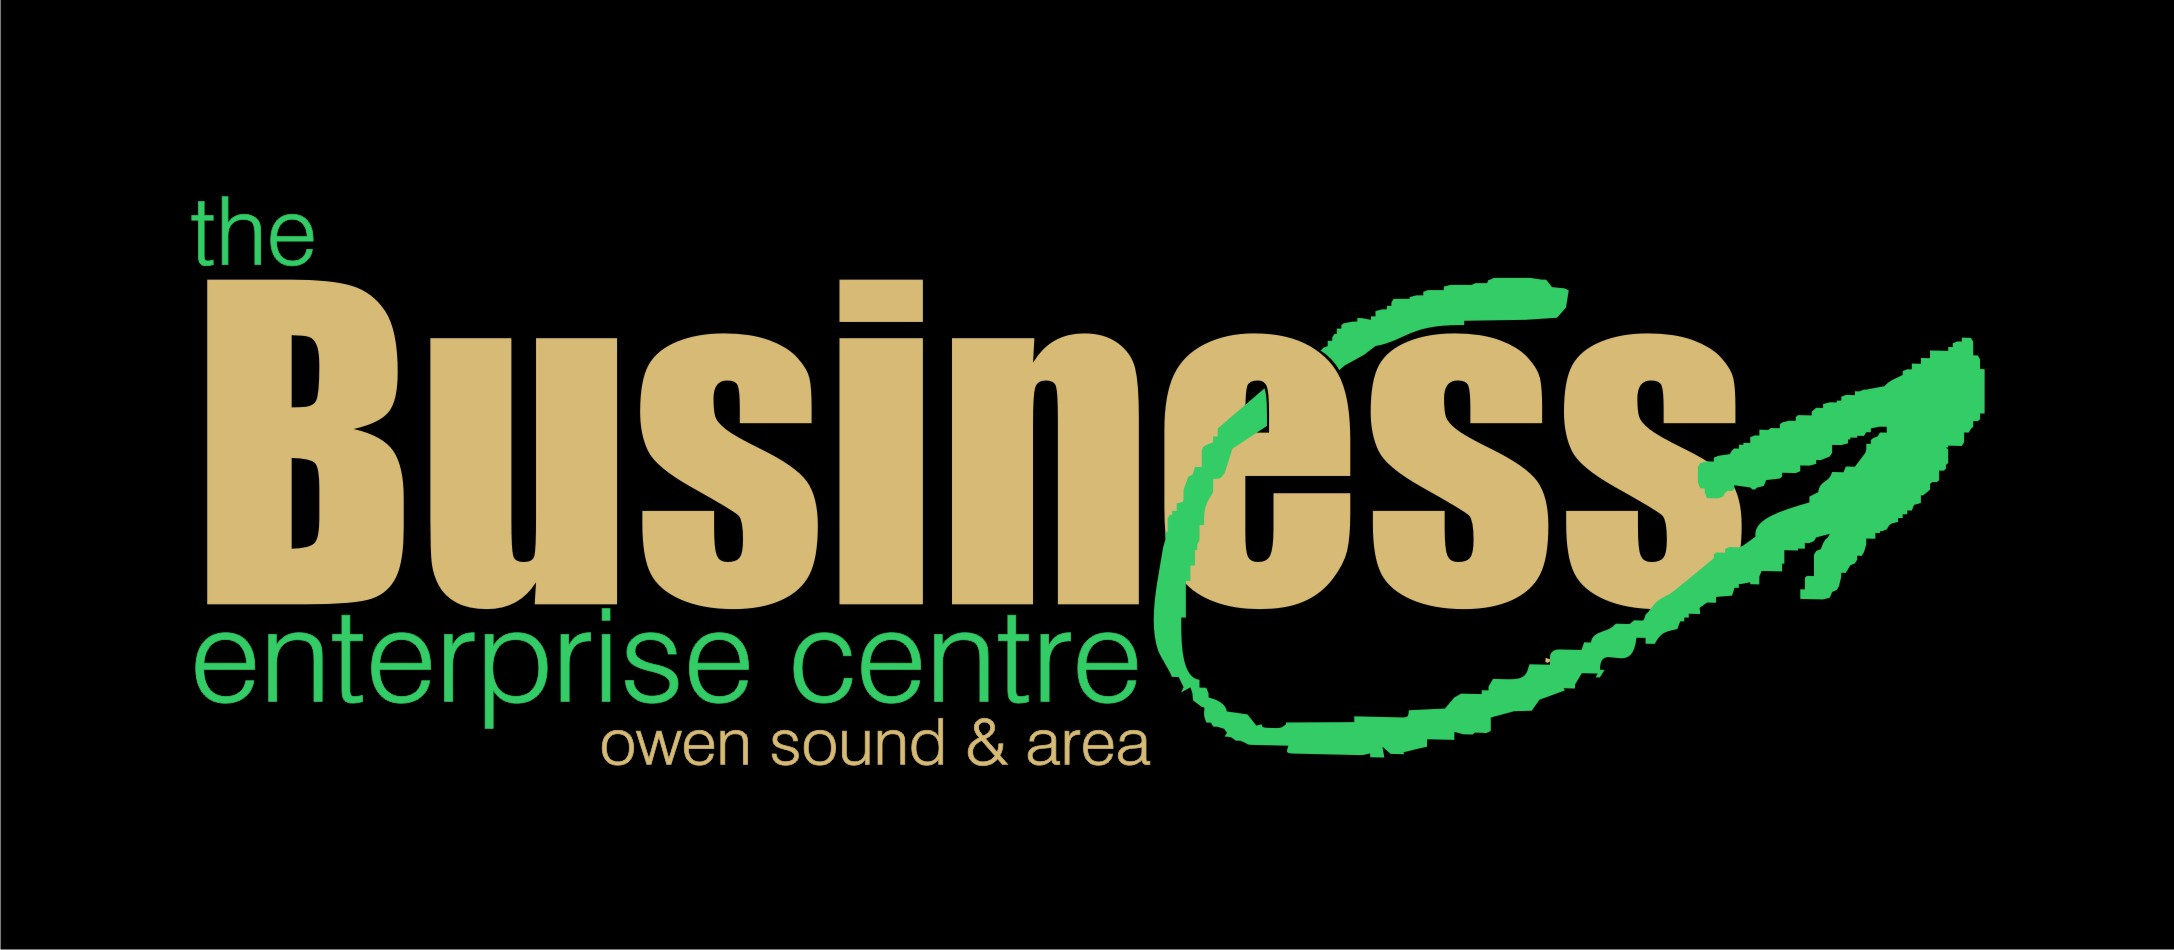 The Business Enterprise Centre